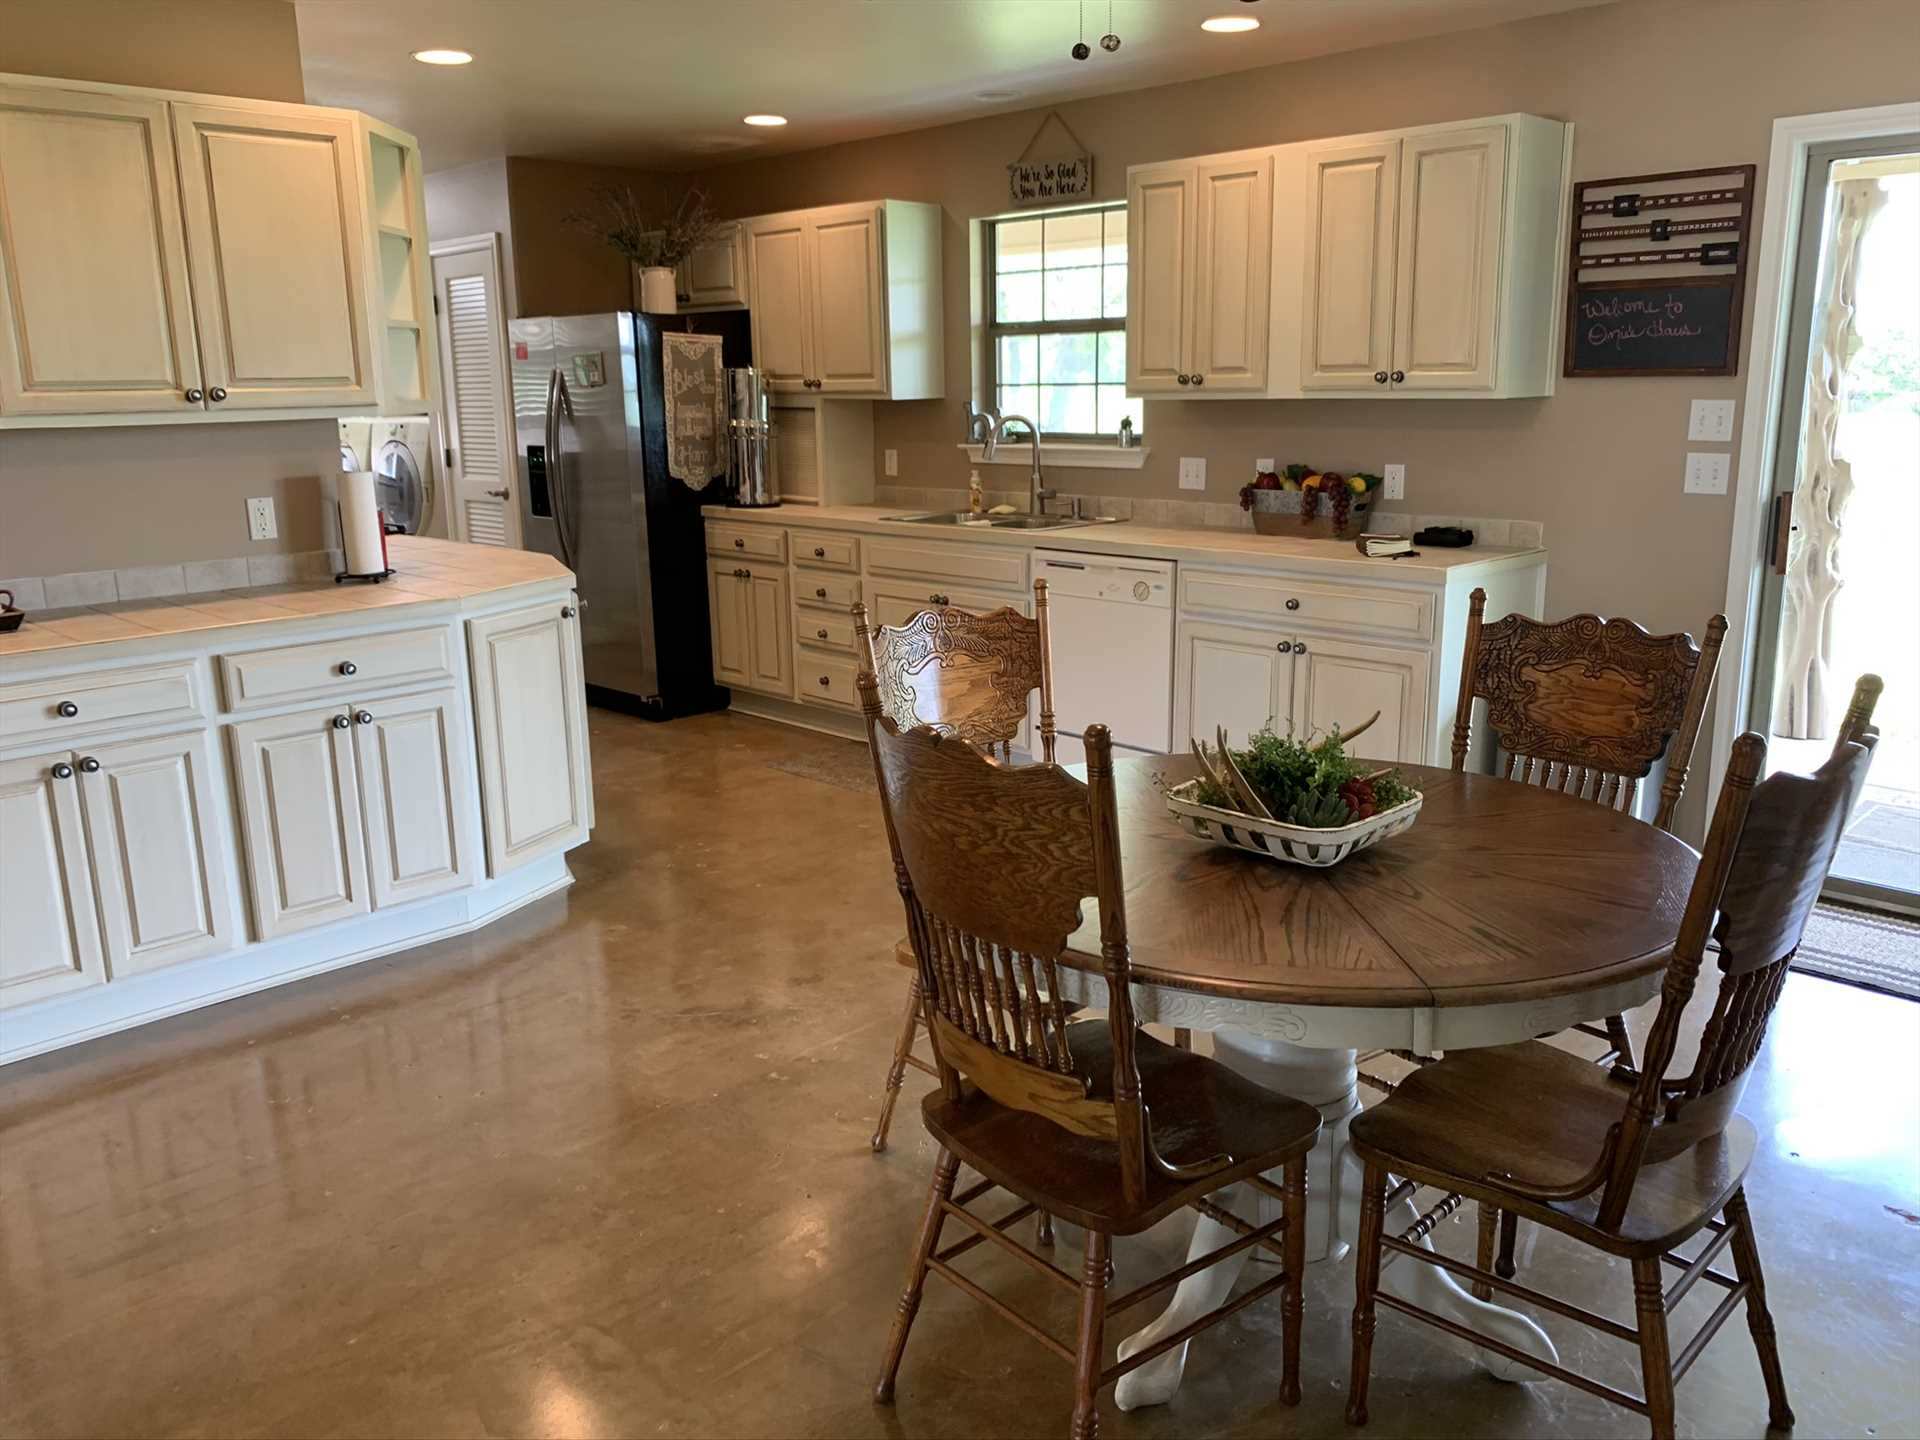 Clean white cabinets, natural light, and vintage furnishings create a fresh and vibrant atmosphere in the kitchen and dining area.